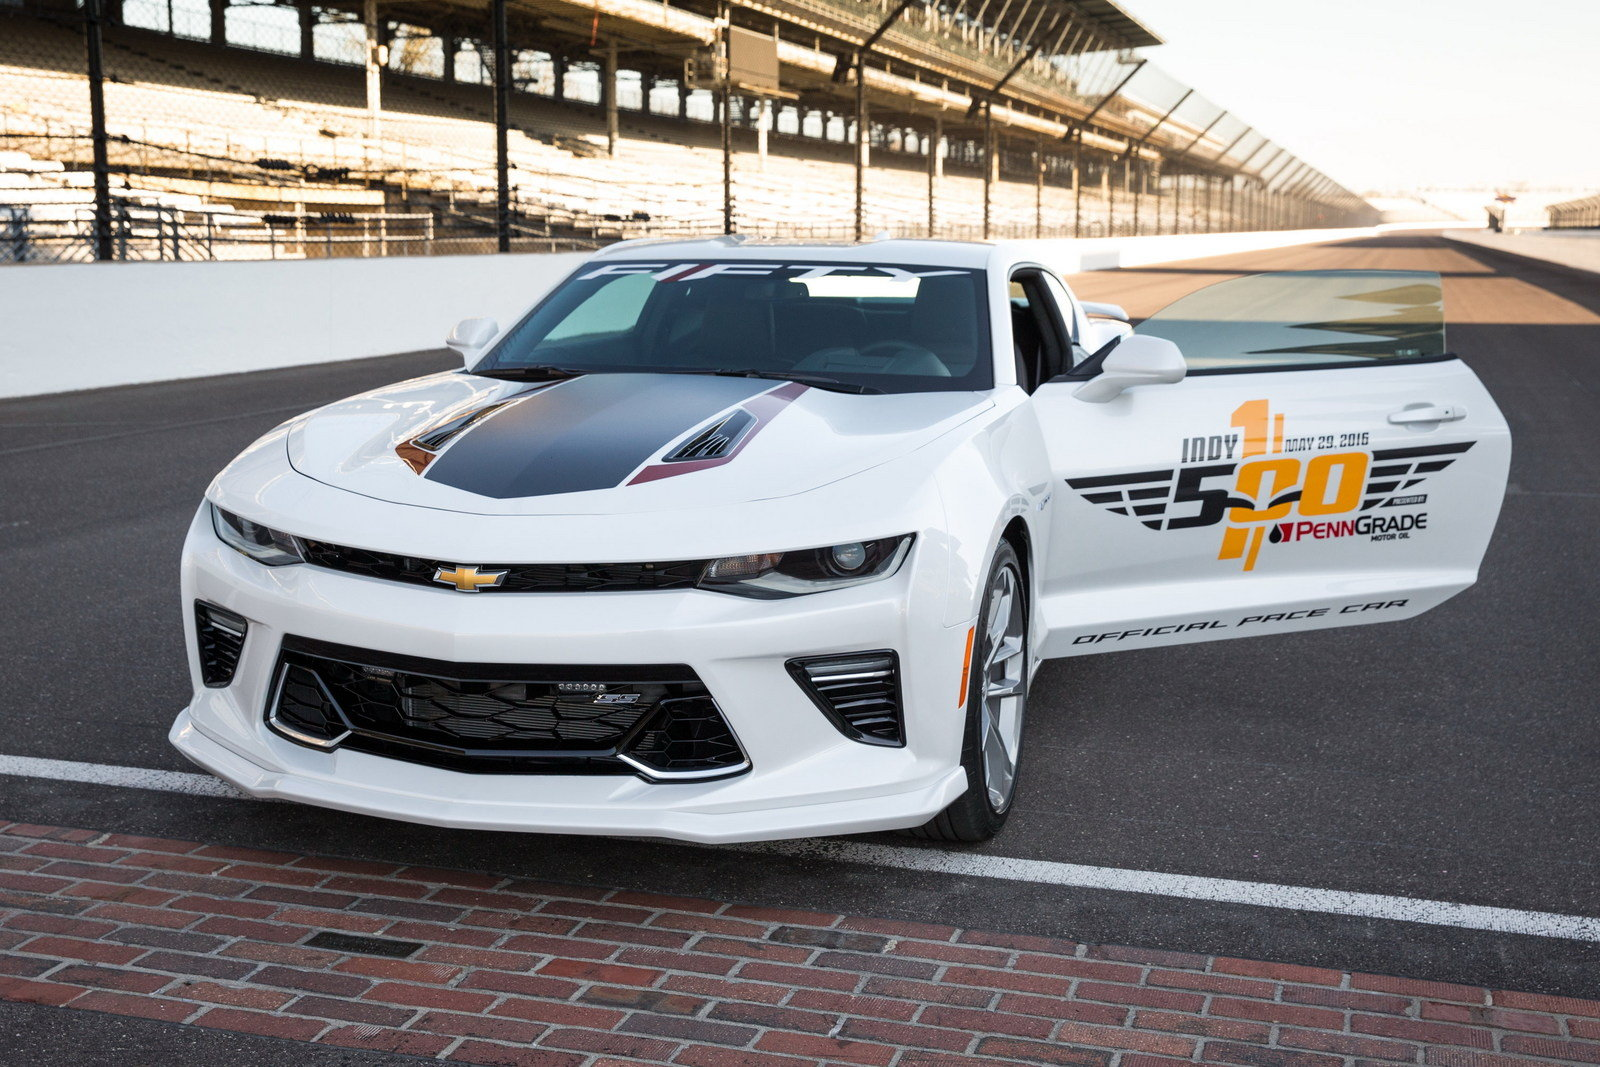 2016 chevrolet camaro ss indy 500 pace car picture 673170 car review top speed. Black Bedroom Furniture Sets. Home Design Ideas